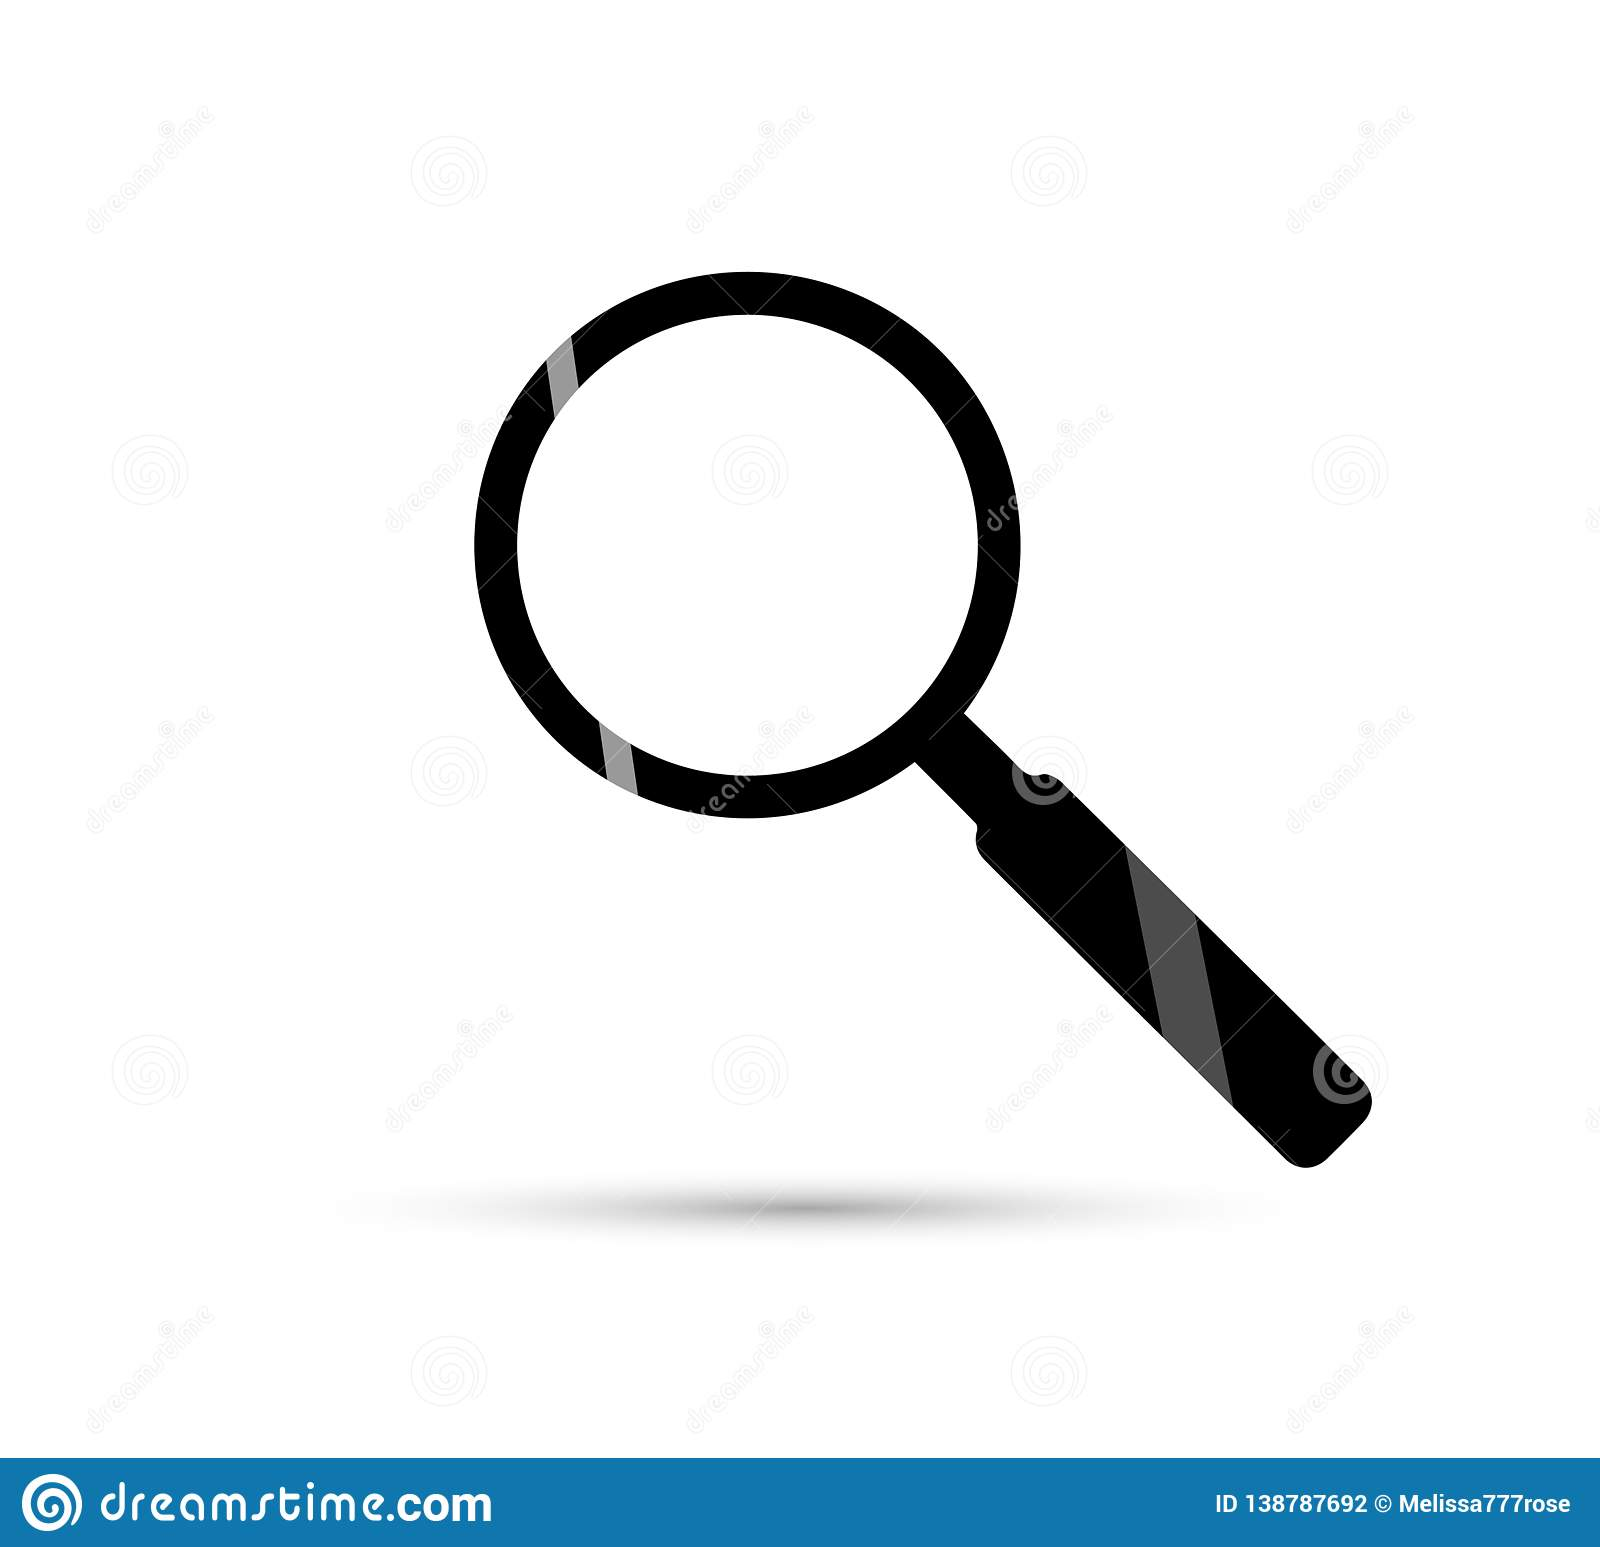 Magnifying glass icon isolated on white background illustration. Zoom symbol, or search icon